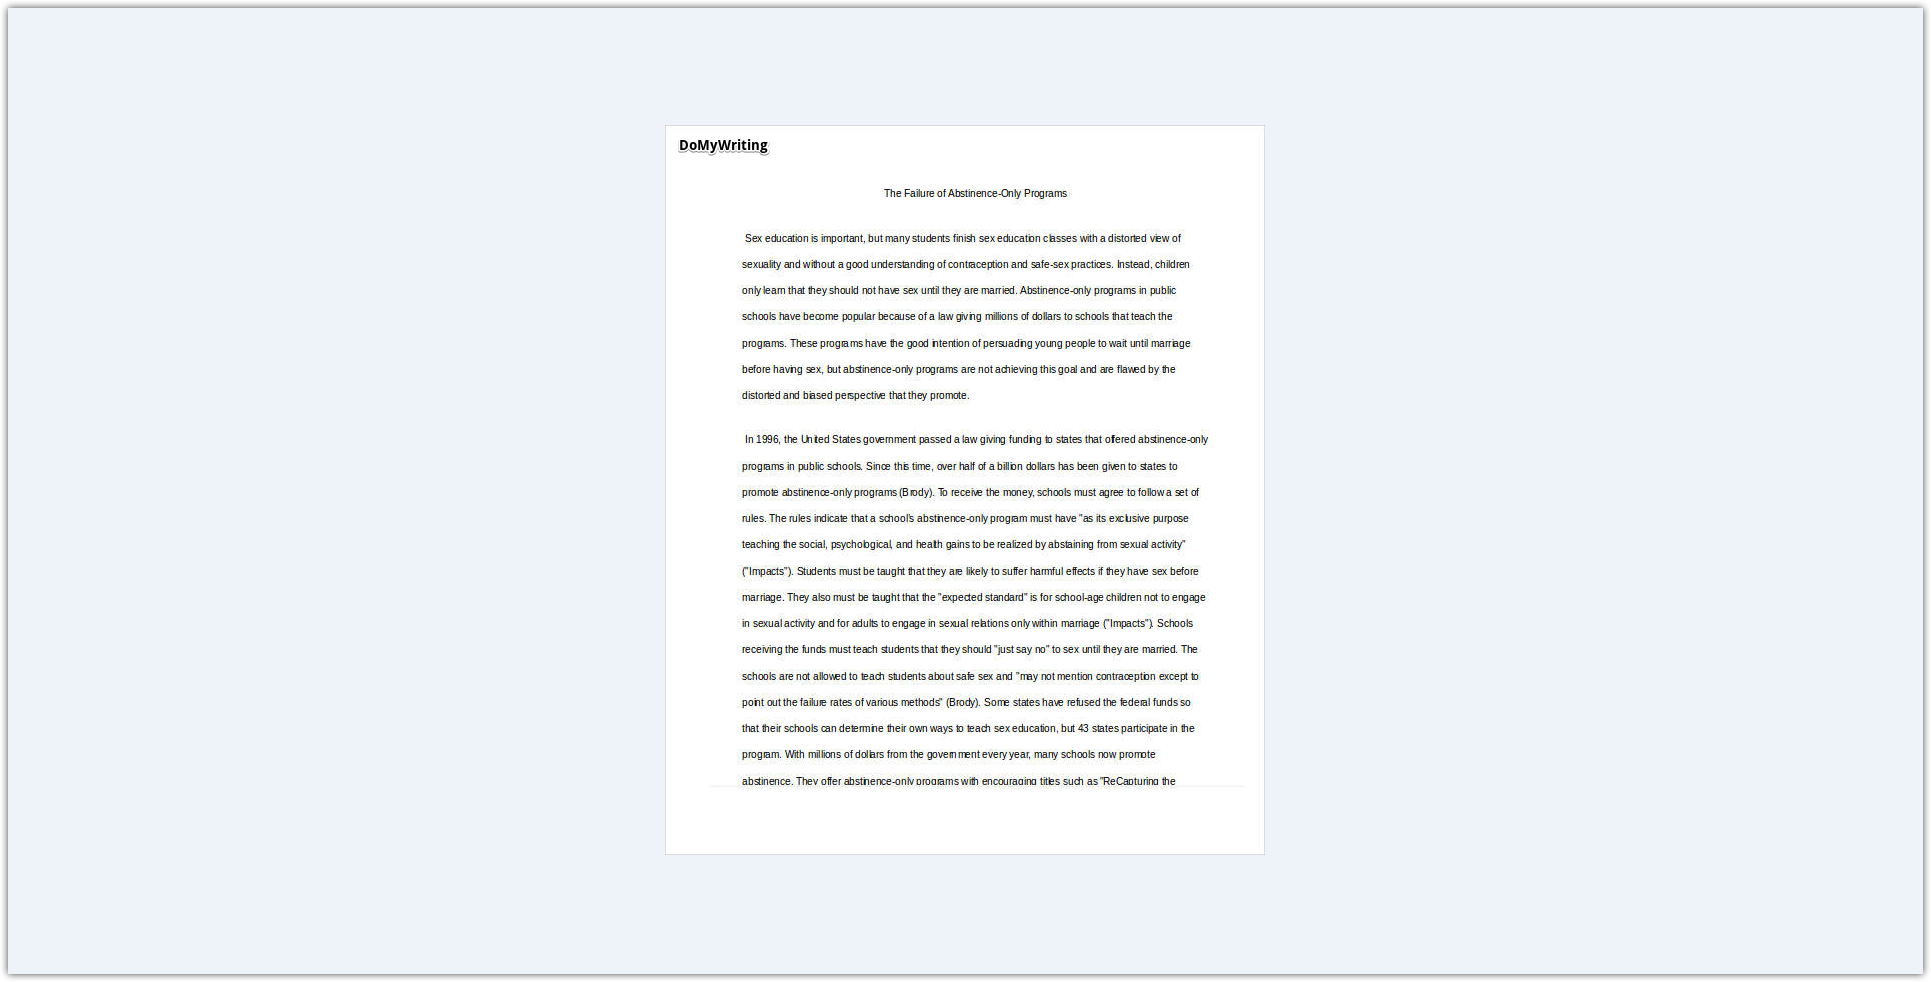 009 Persuasive Essay Definition Archaicawful Pdf Literary Wikipedia Full